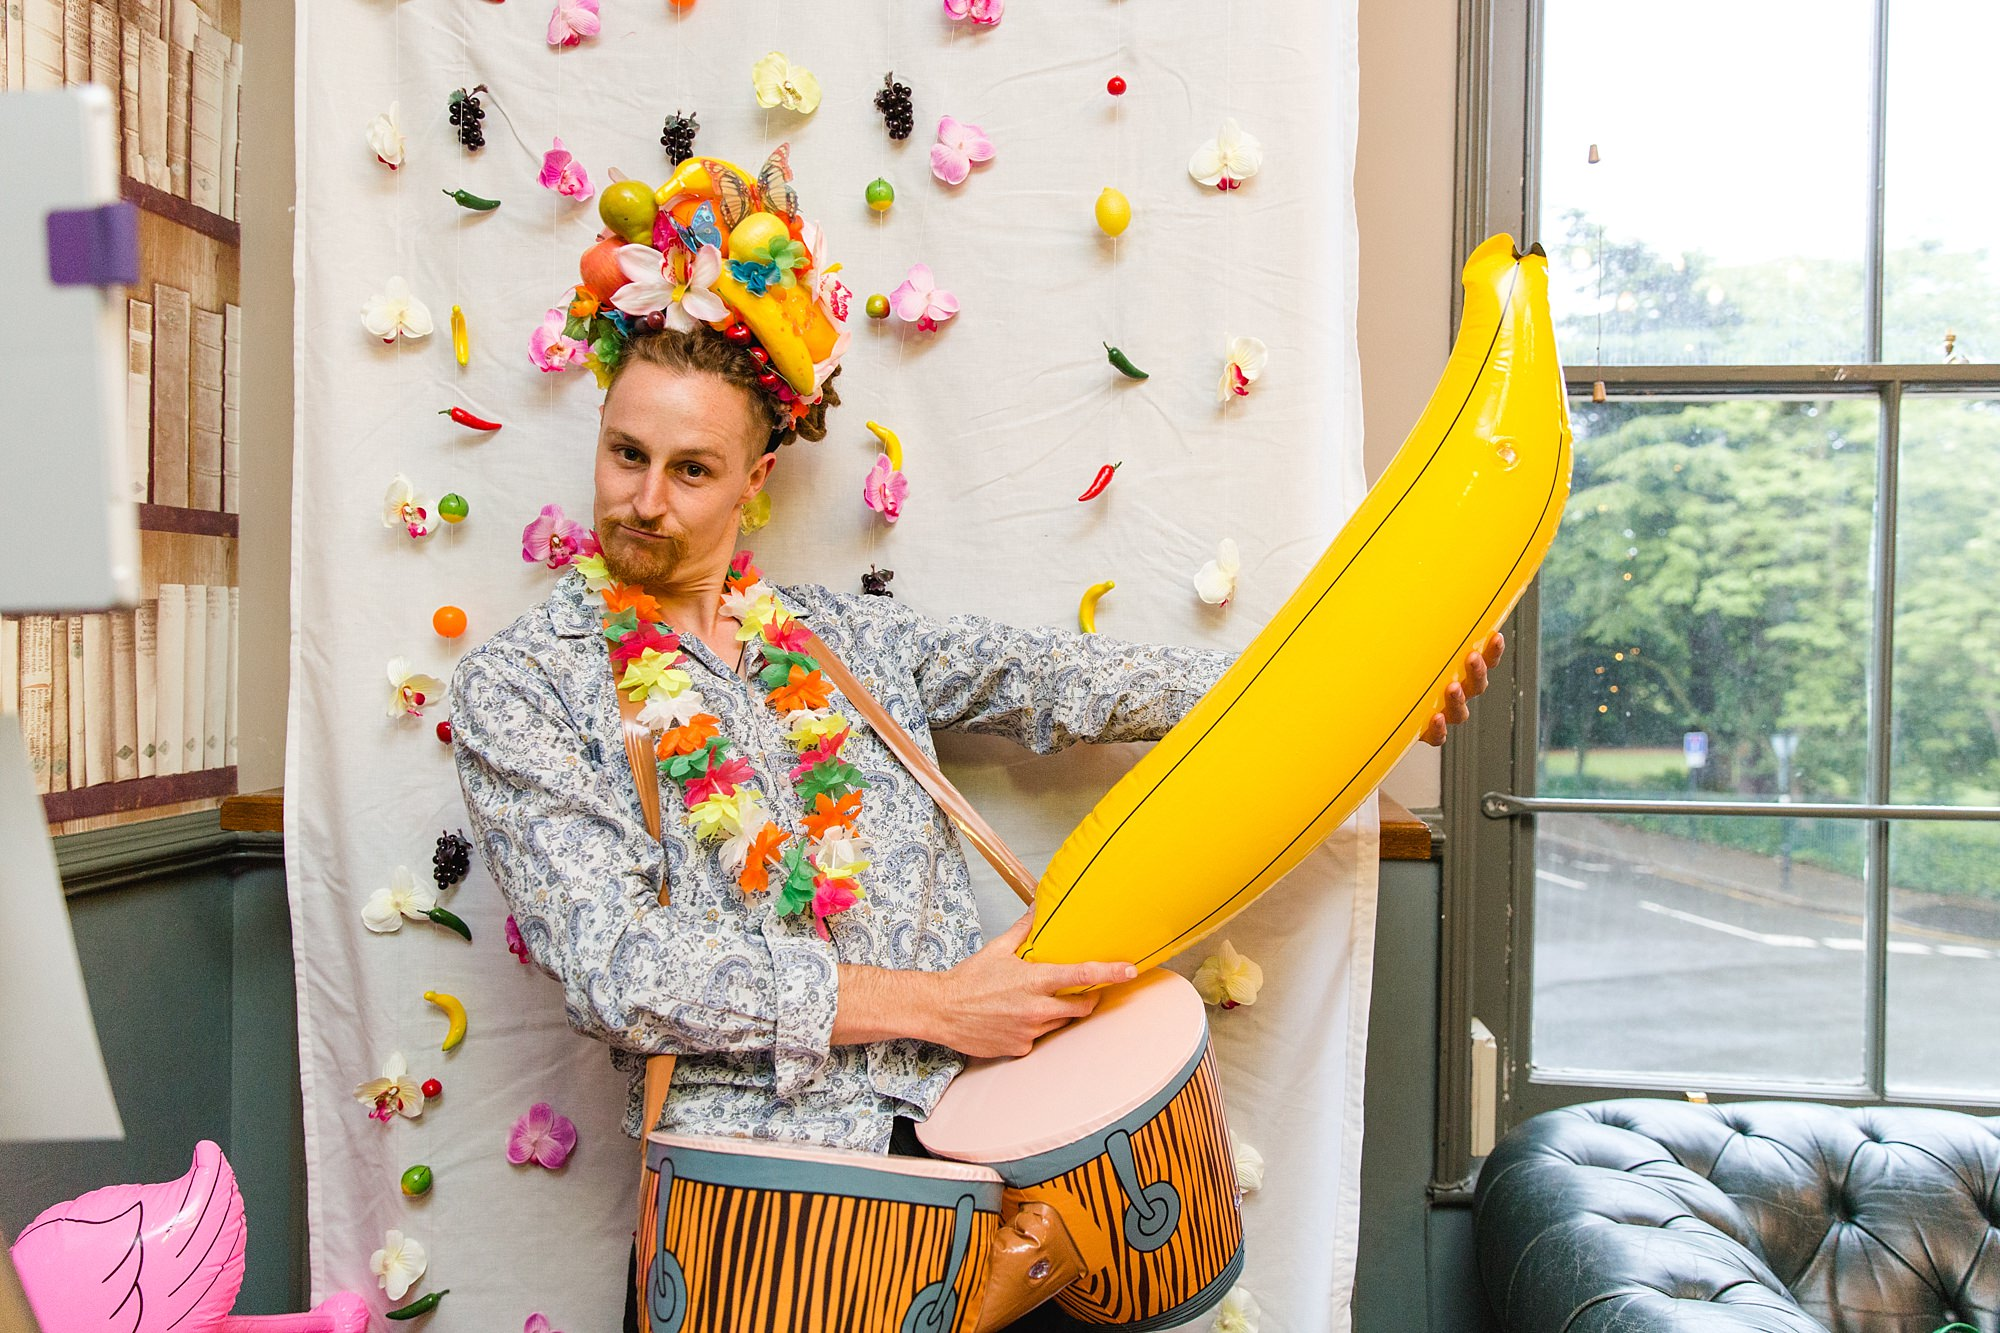 The Grange Ealing wedding fun portrait of guest with inflatable banana